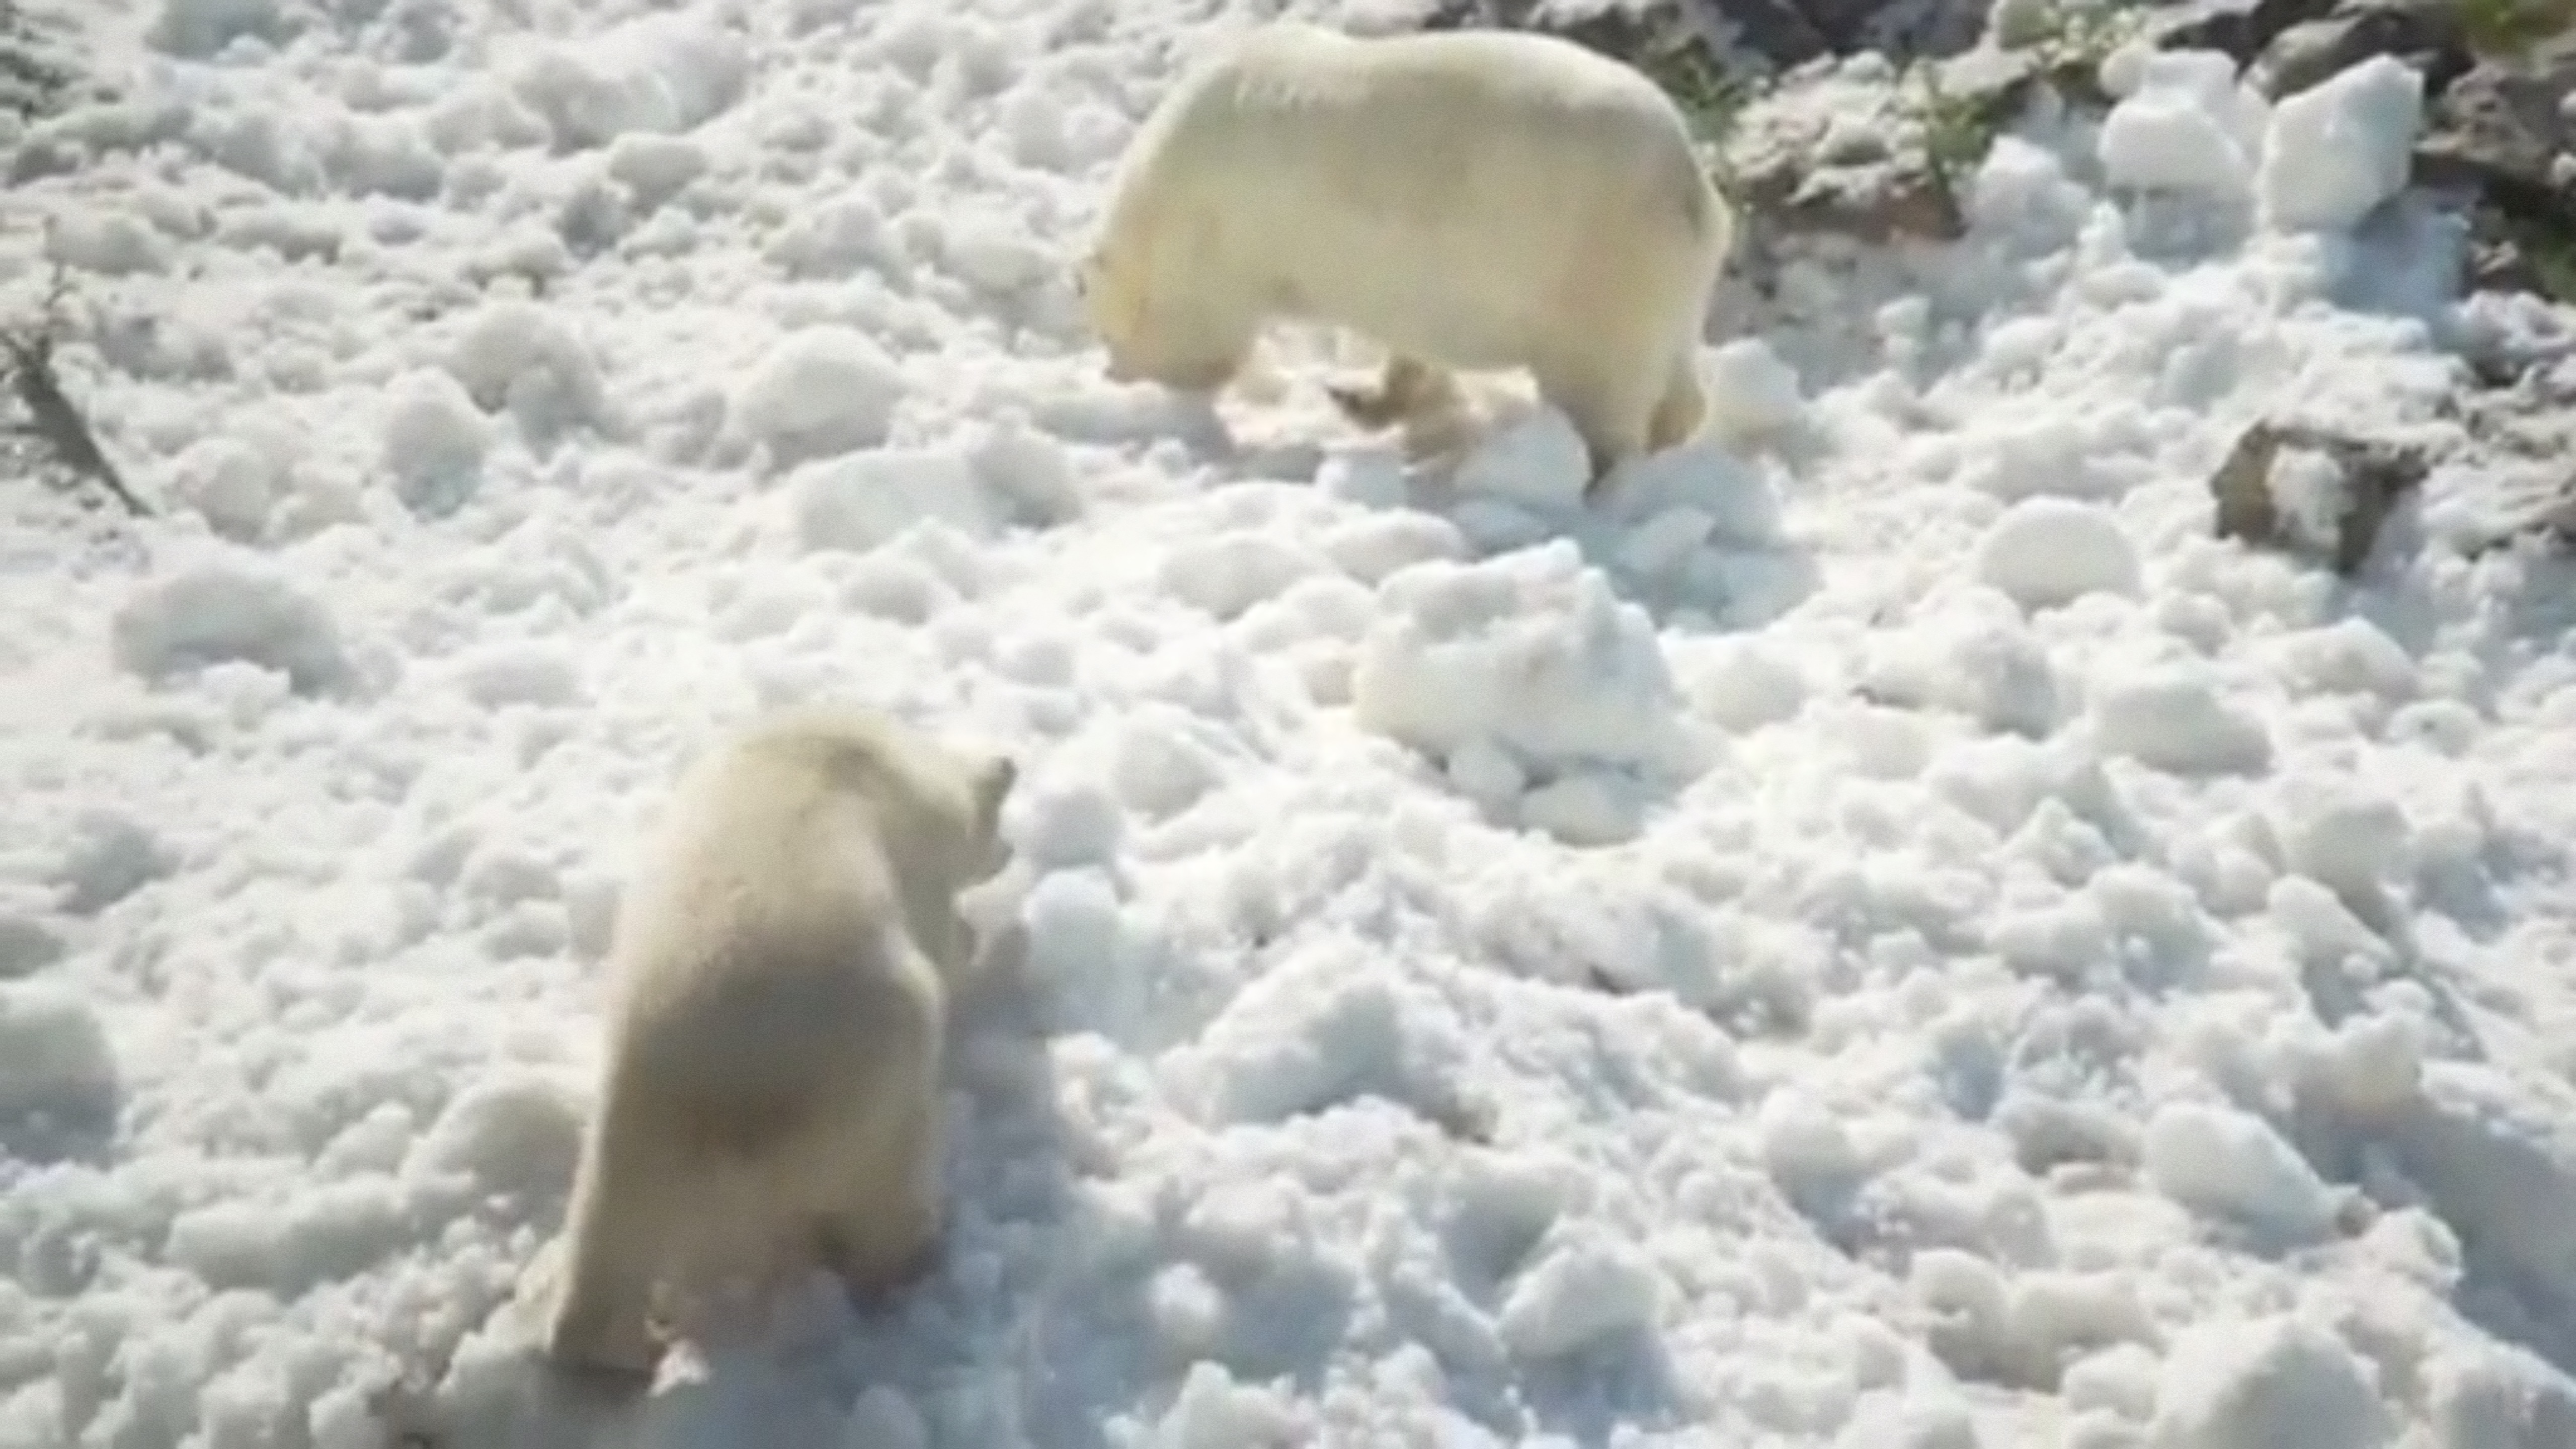 Christmas comes early for polar bears at a Finland zoo with snow in July